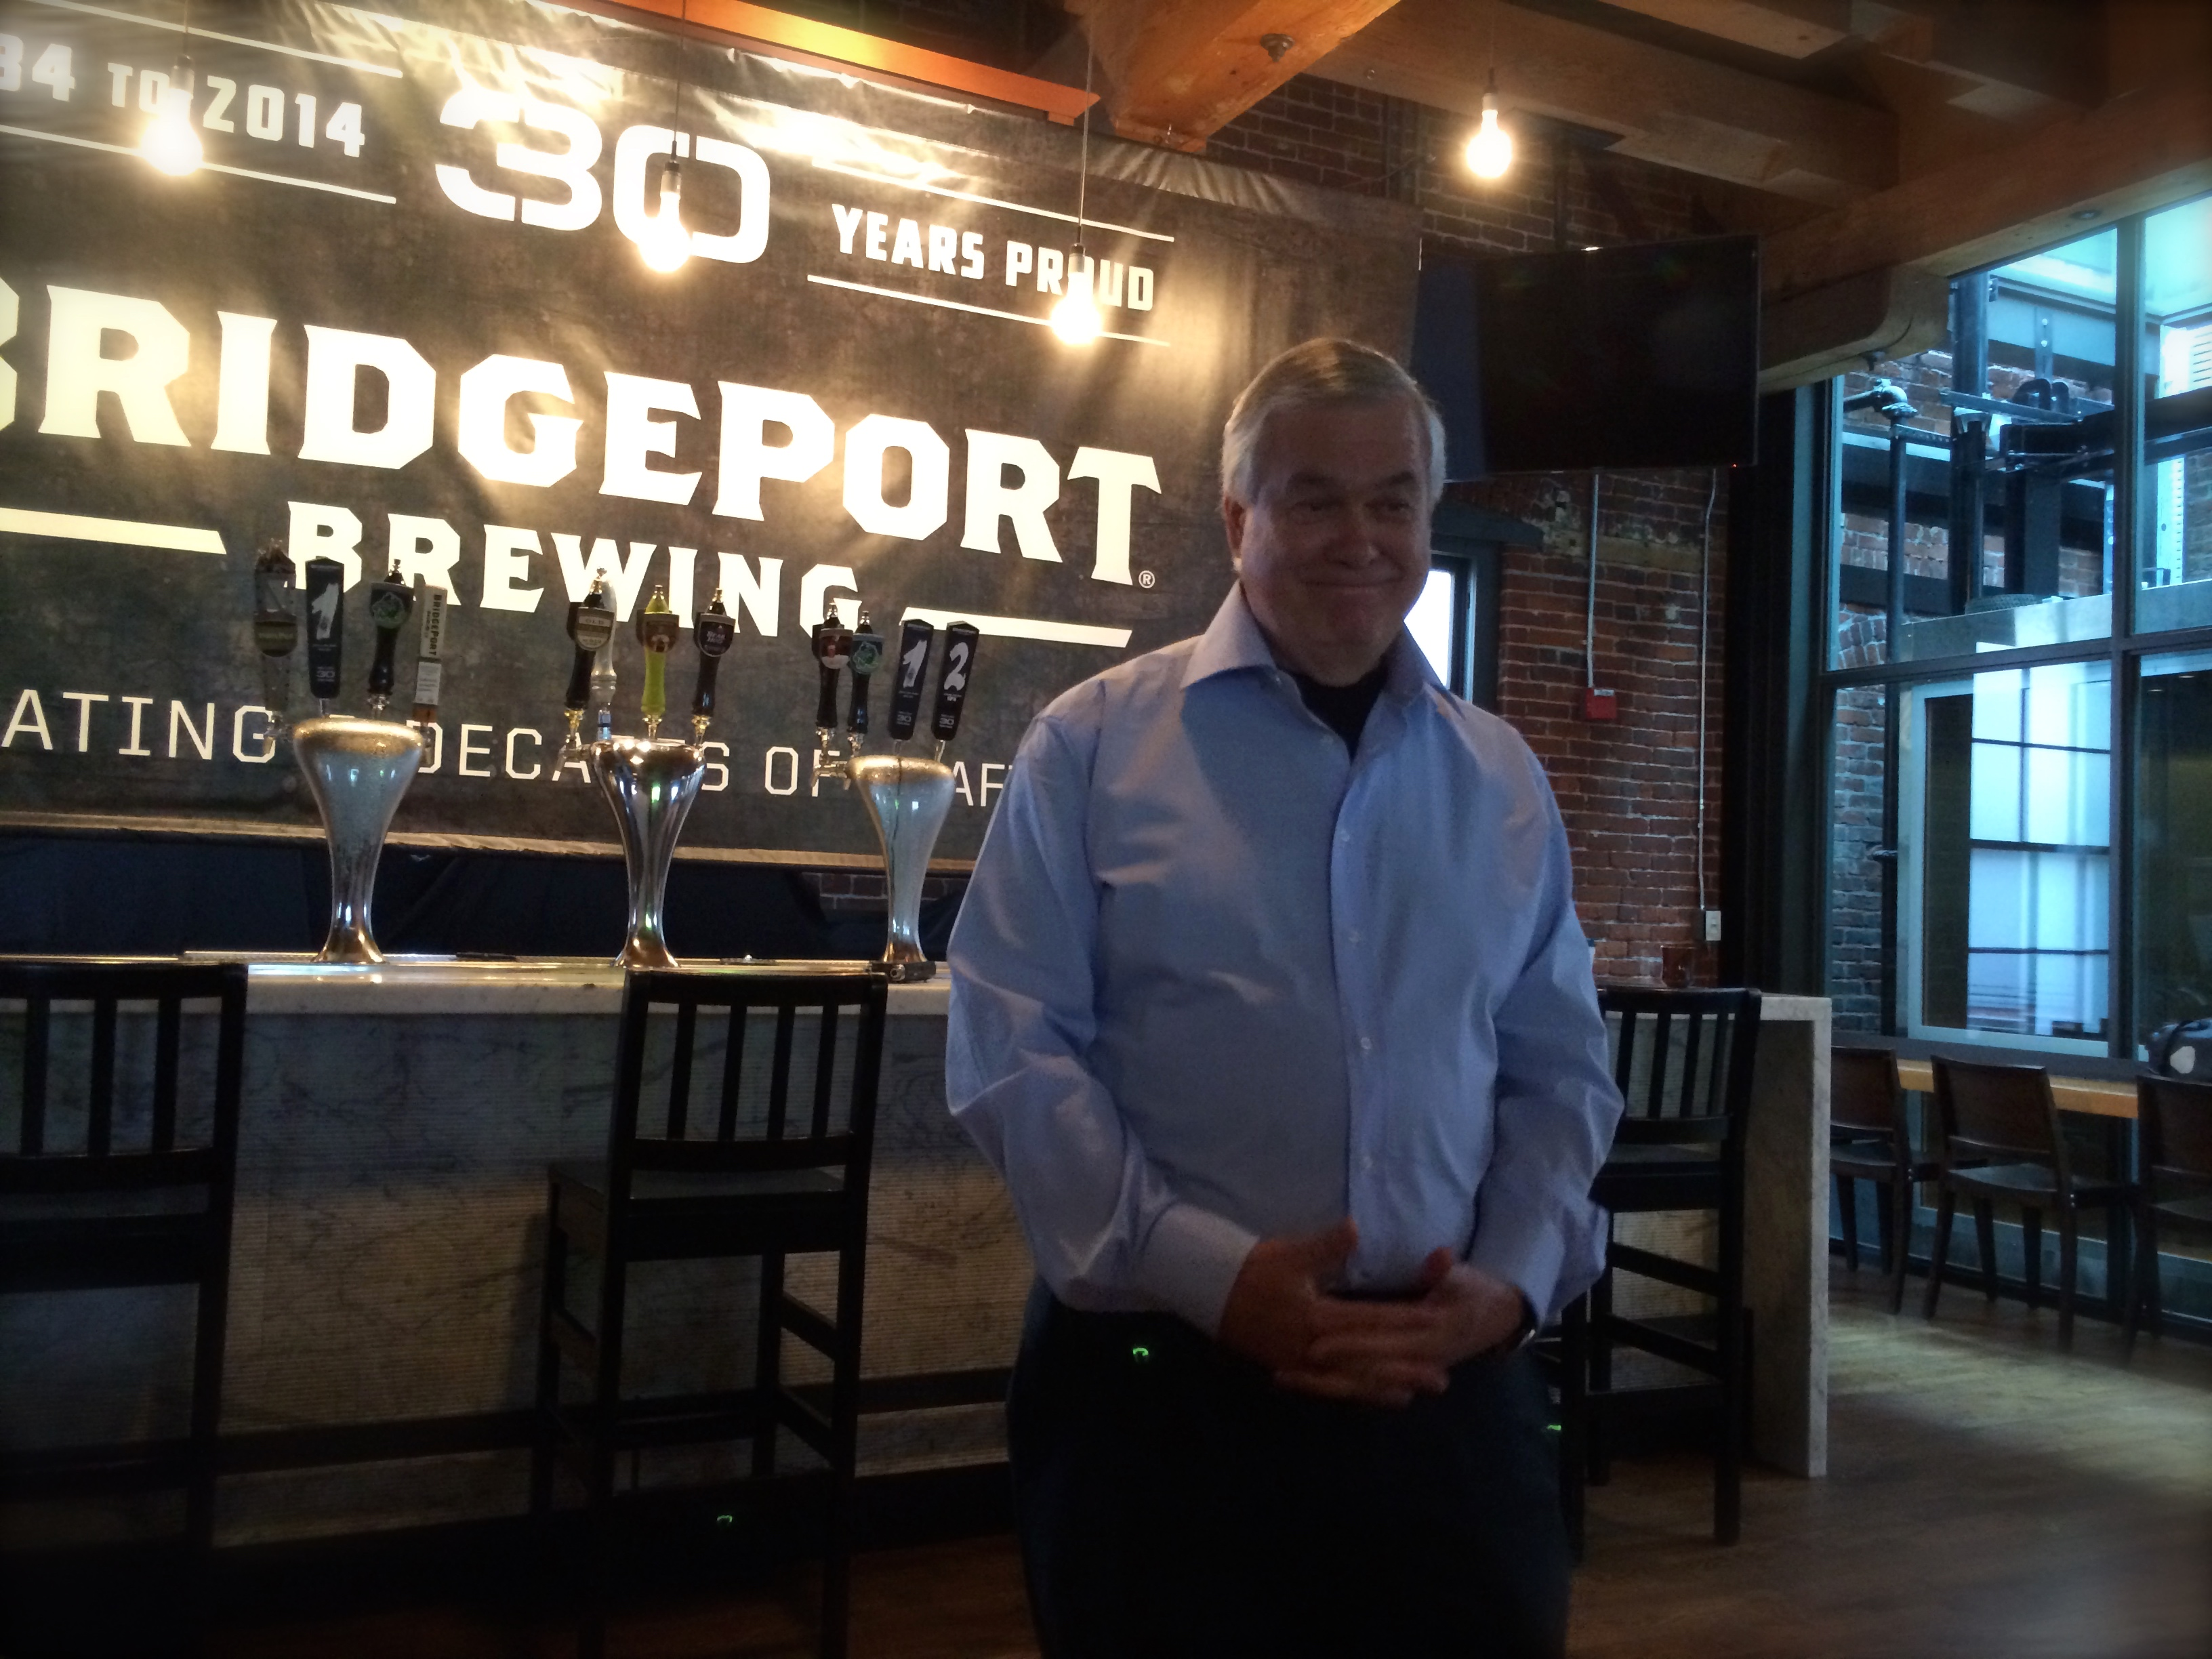 Carlos Alvarez, founder and owner of The Gambrinus Company at BridgePort Brewing